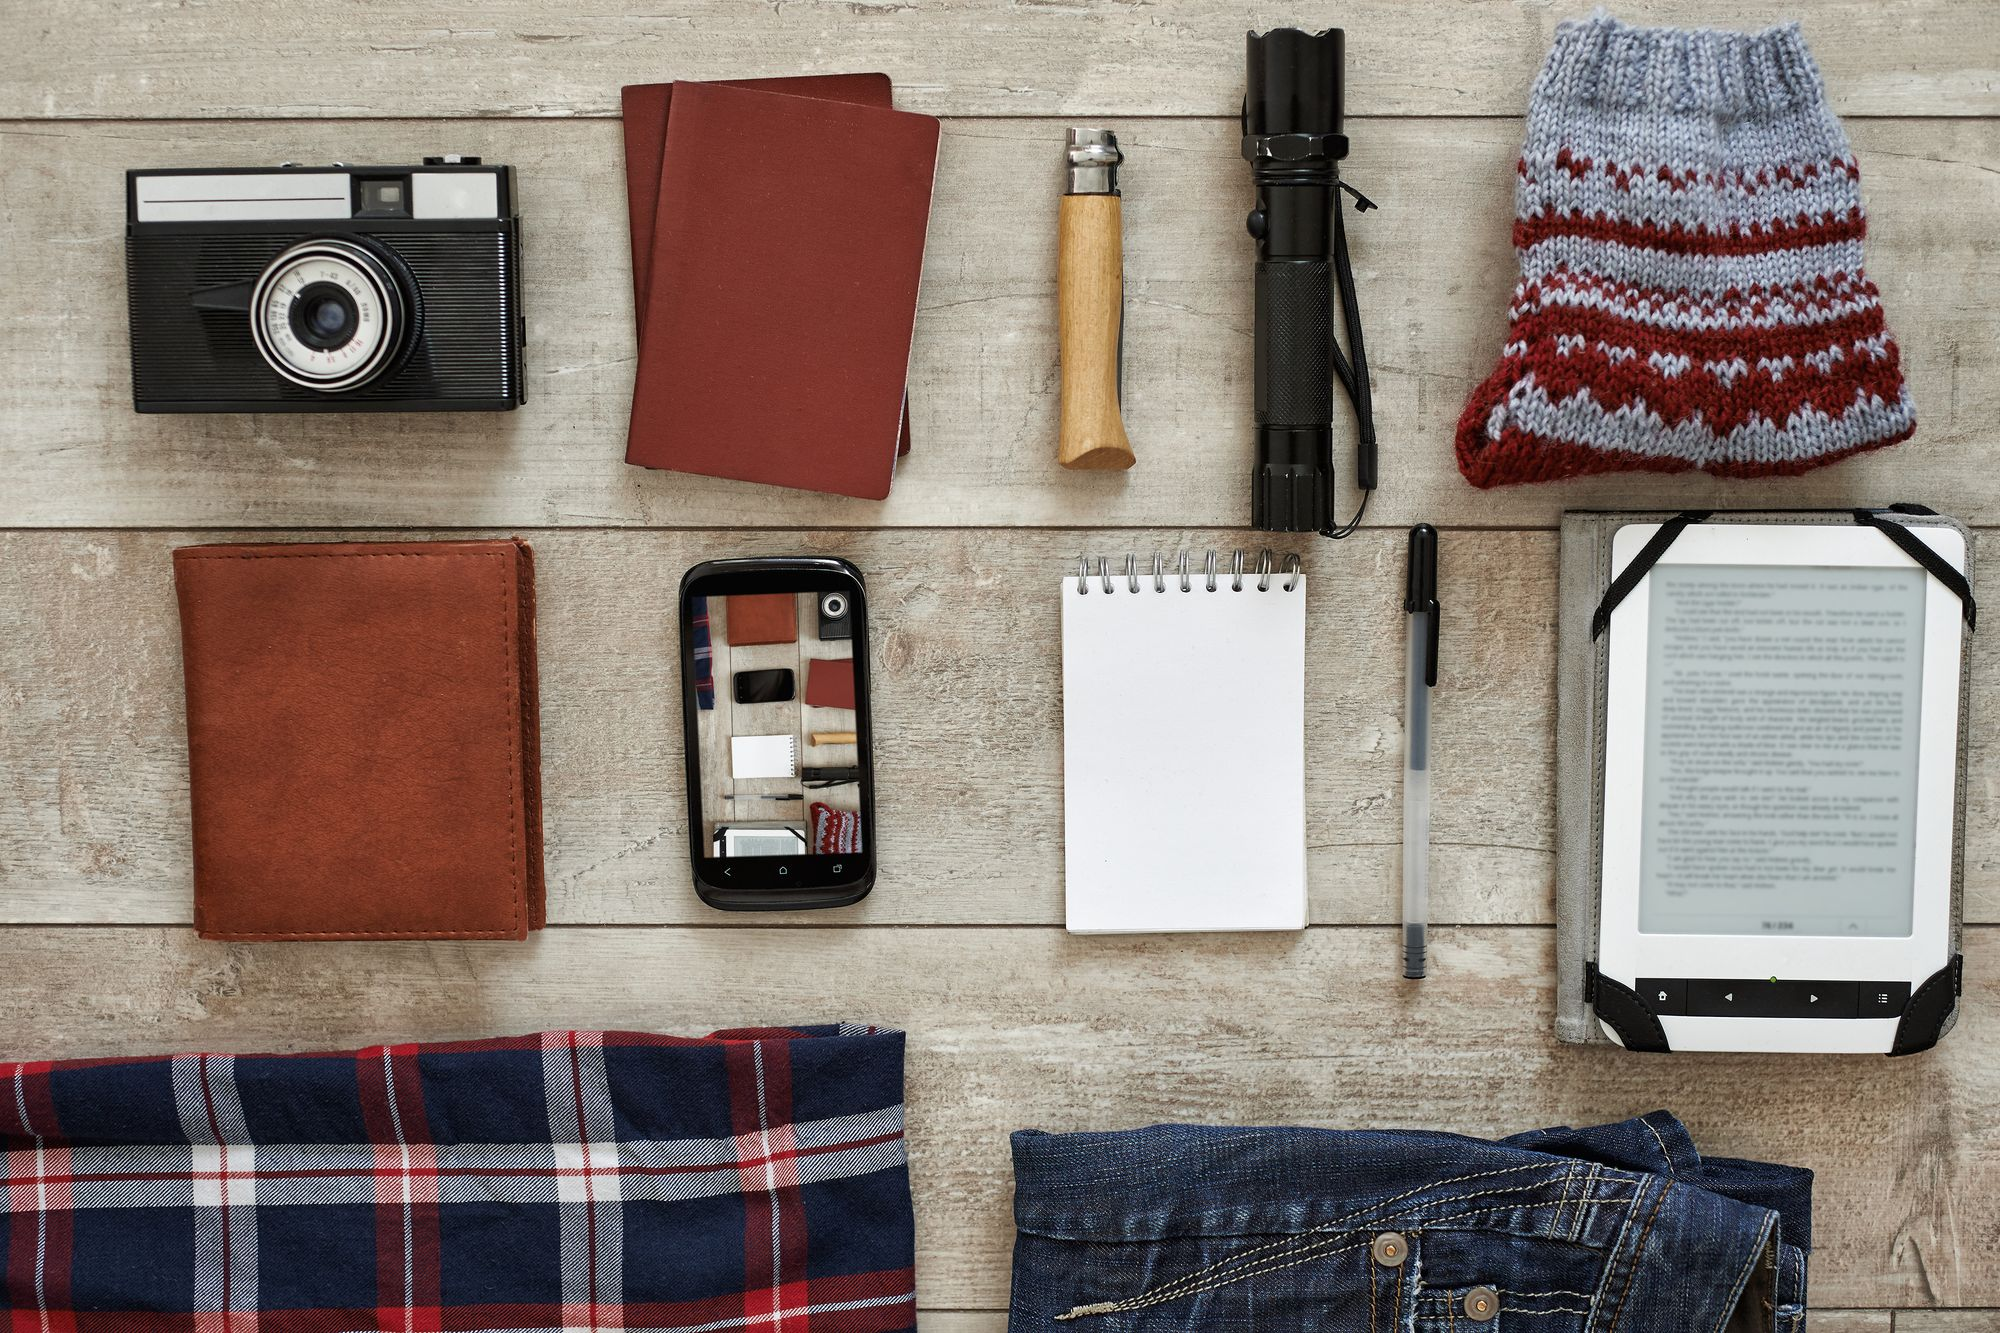 Camera, torch, phone, notebook and other travel essentials to take with you in your cabin bag